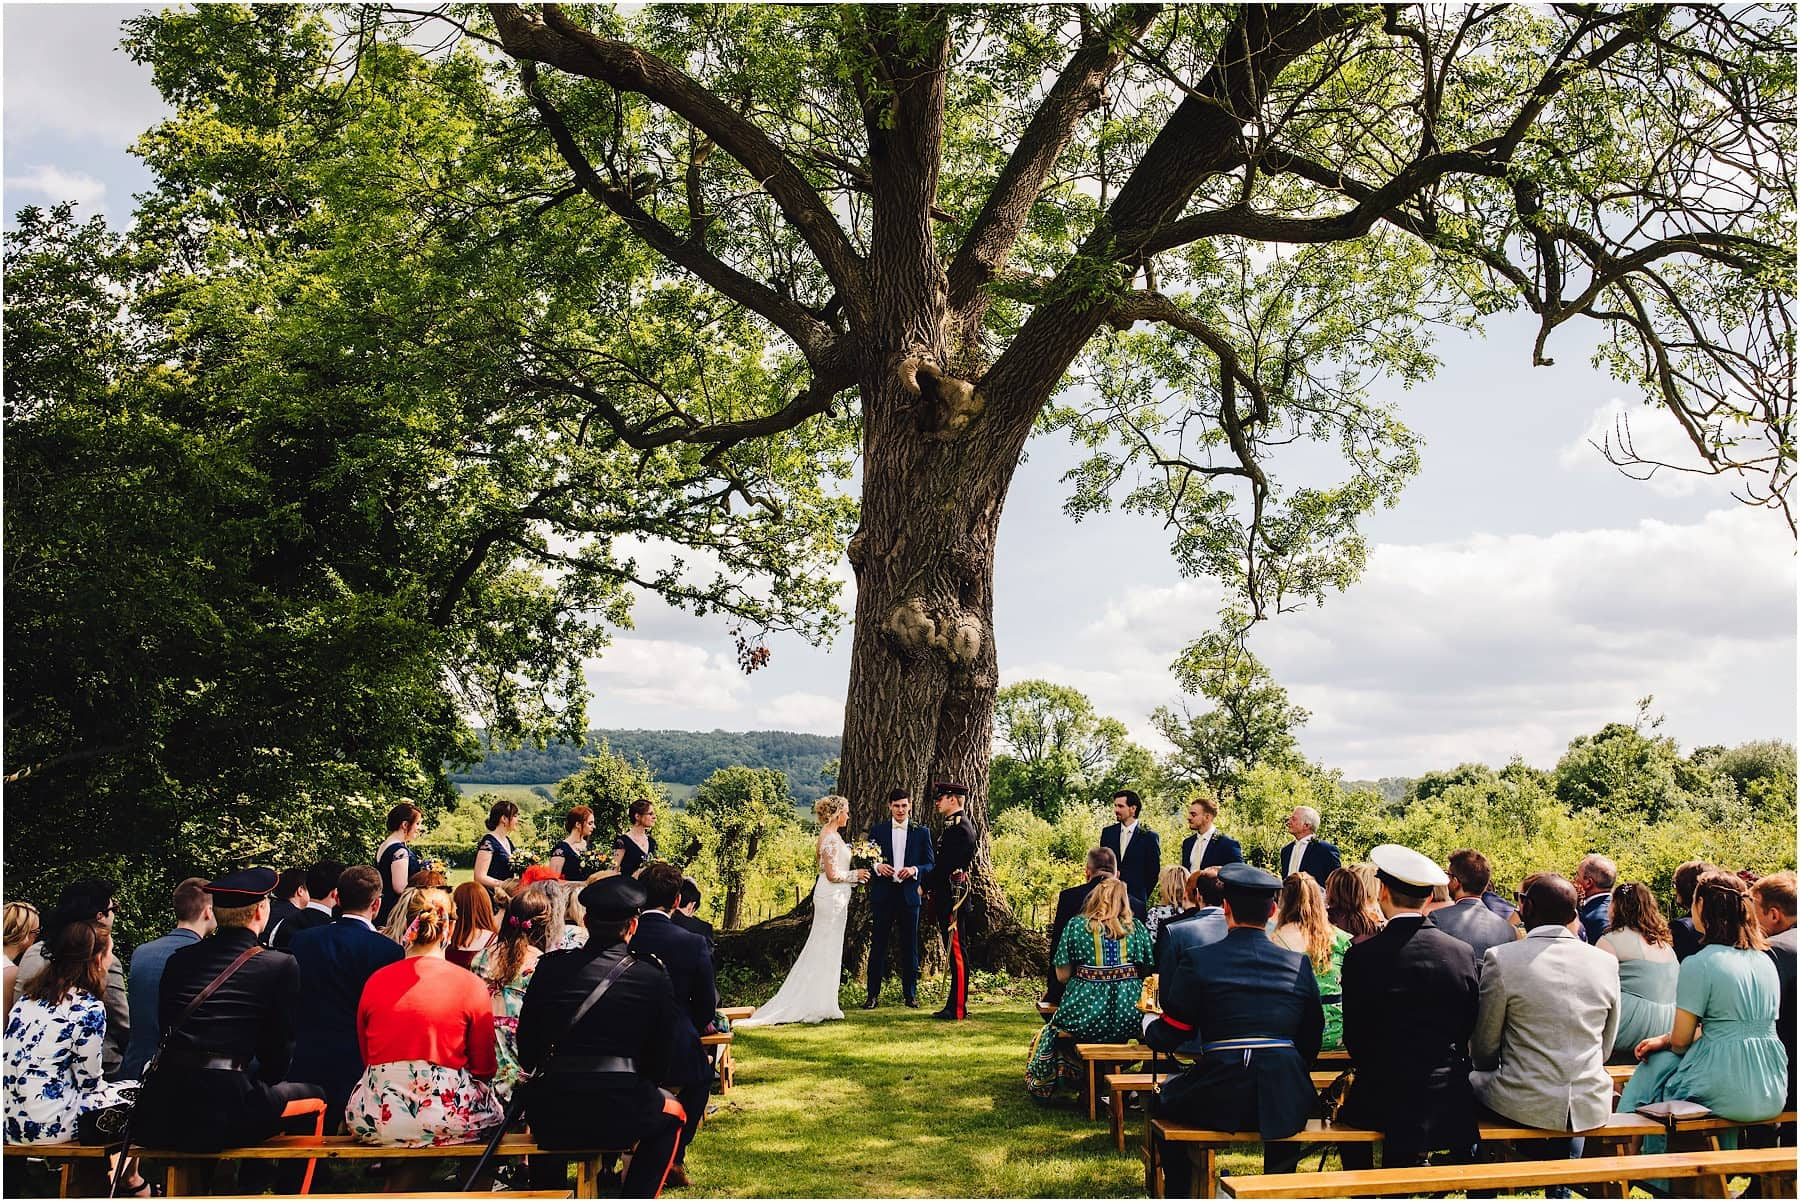 Wedding ceremony at the Haybarn in Shropshire